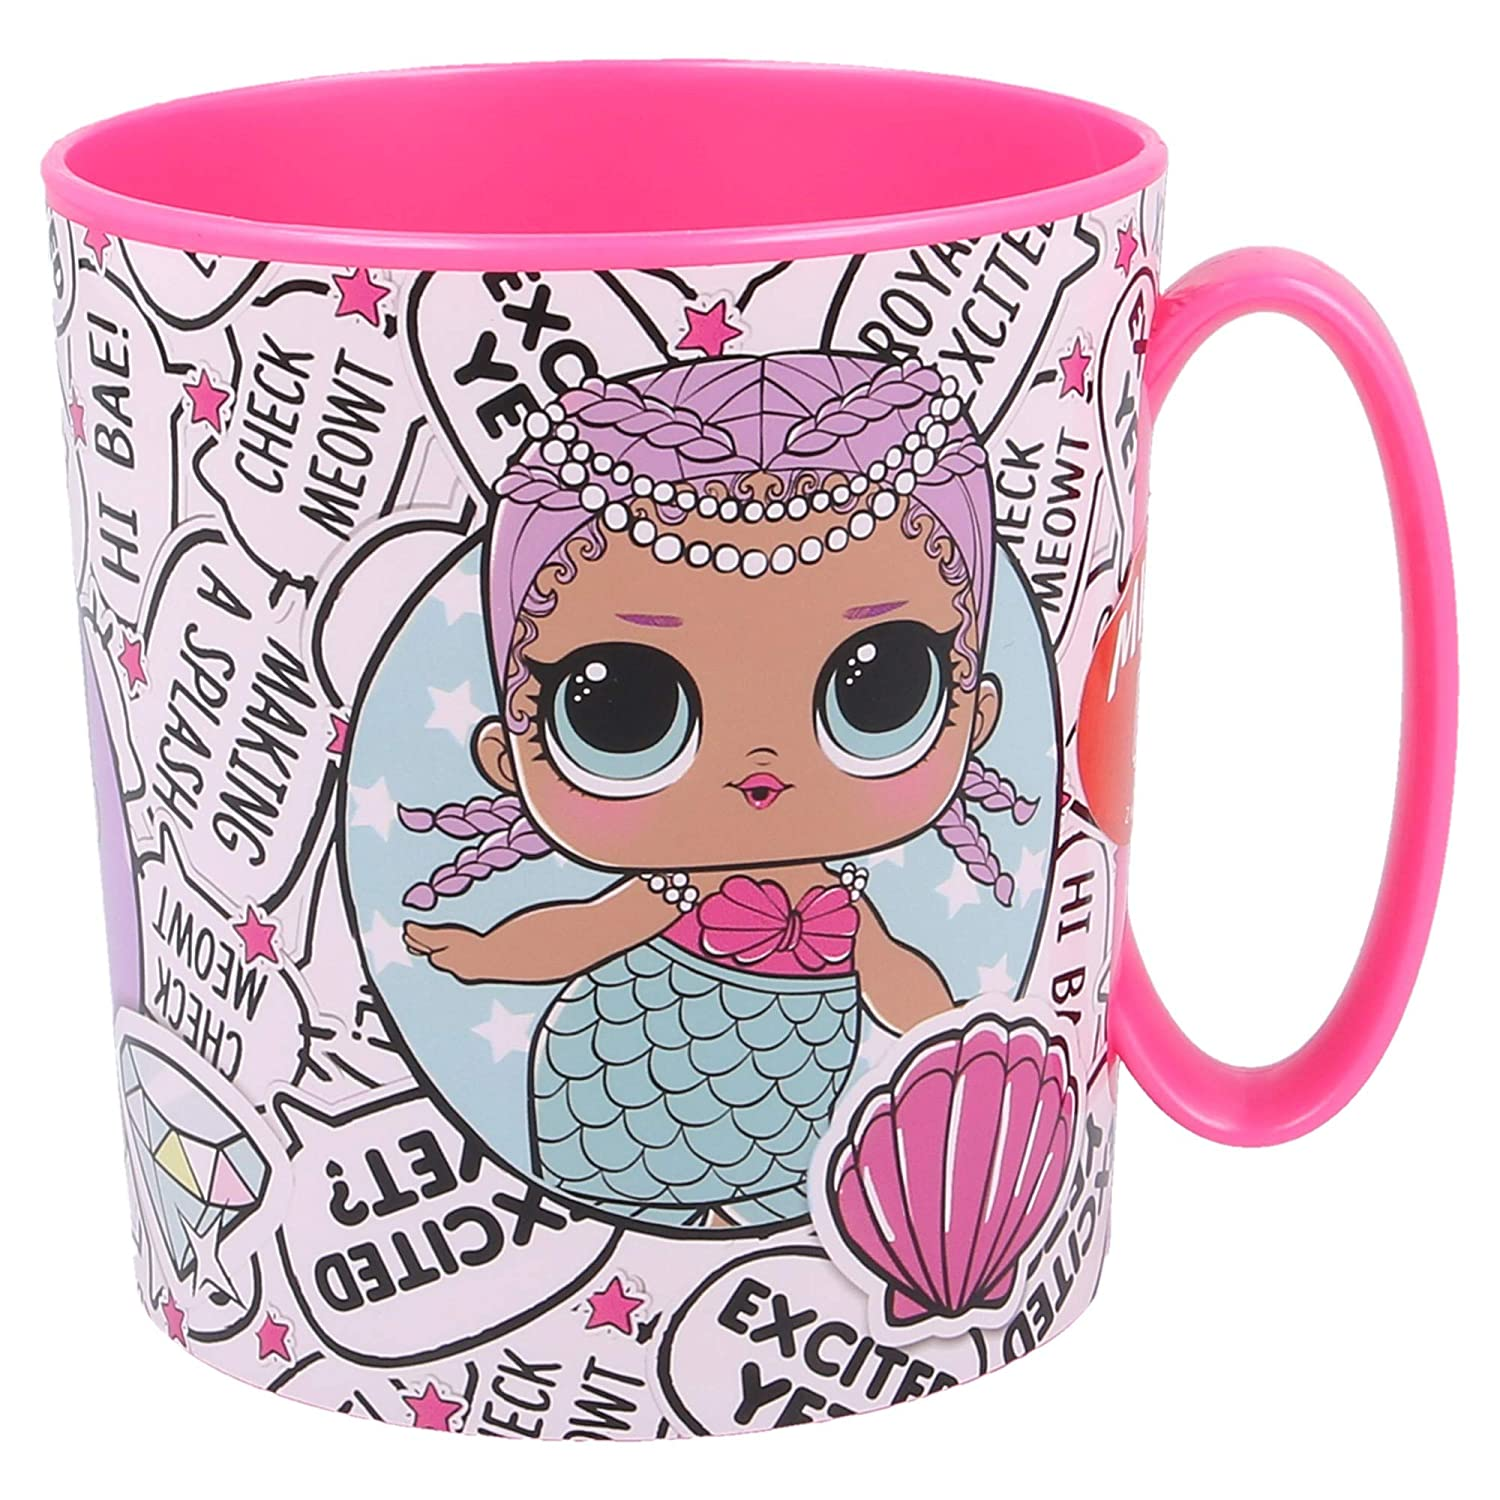 TAZA MICRO 350 ML | LOL SURPRISE ROCK ON: Amazon.es: Hogar